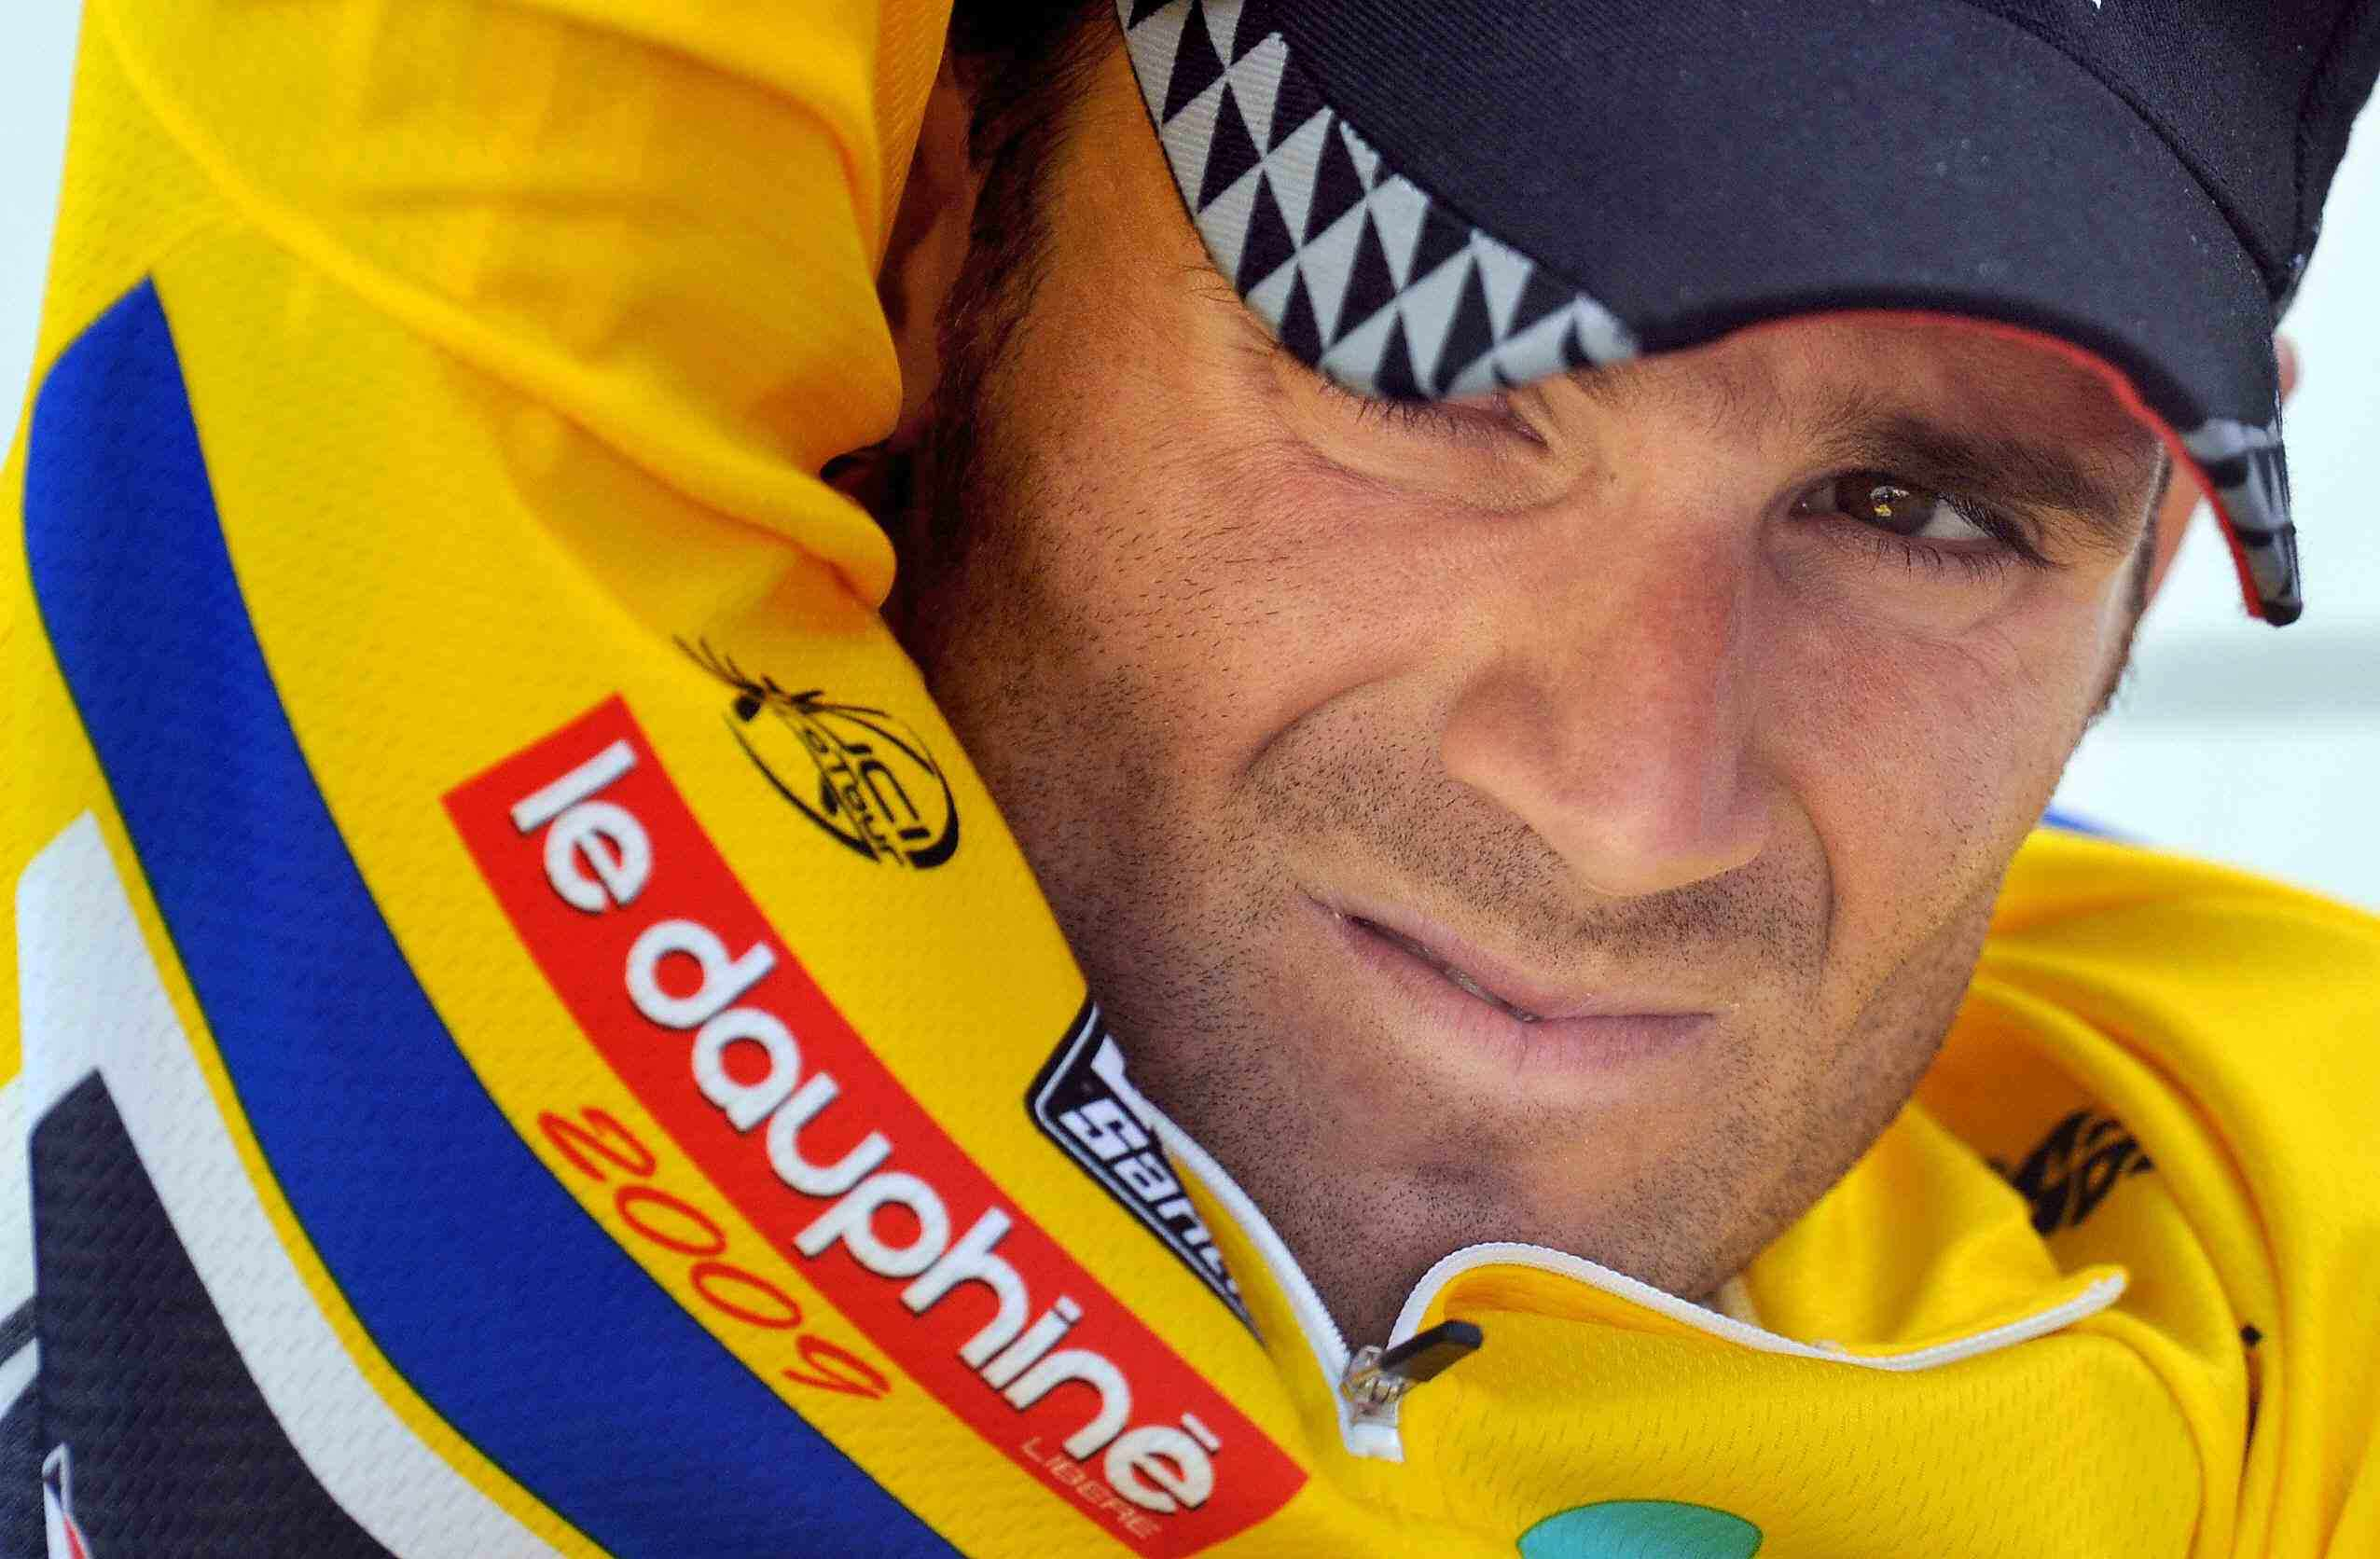 Spain's Alejandro Valverde may have won the recent Dauphine Libre, but his team isn't taking him to the Tour de France.